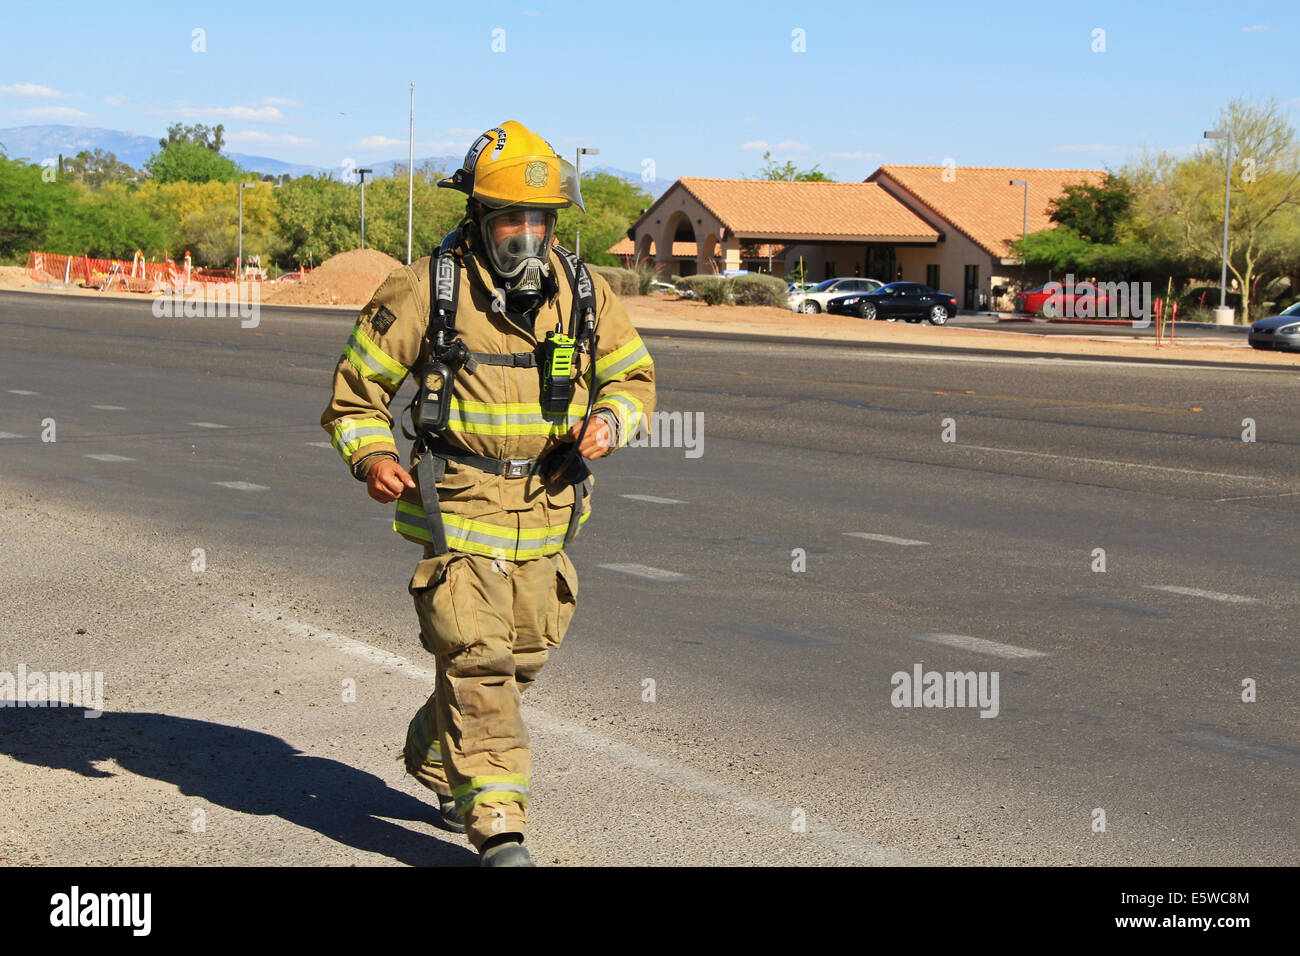 Firefighter Training in Protective Suit - Stock Image